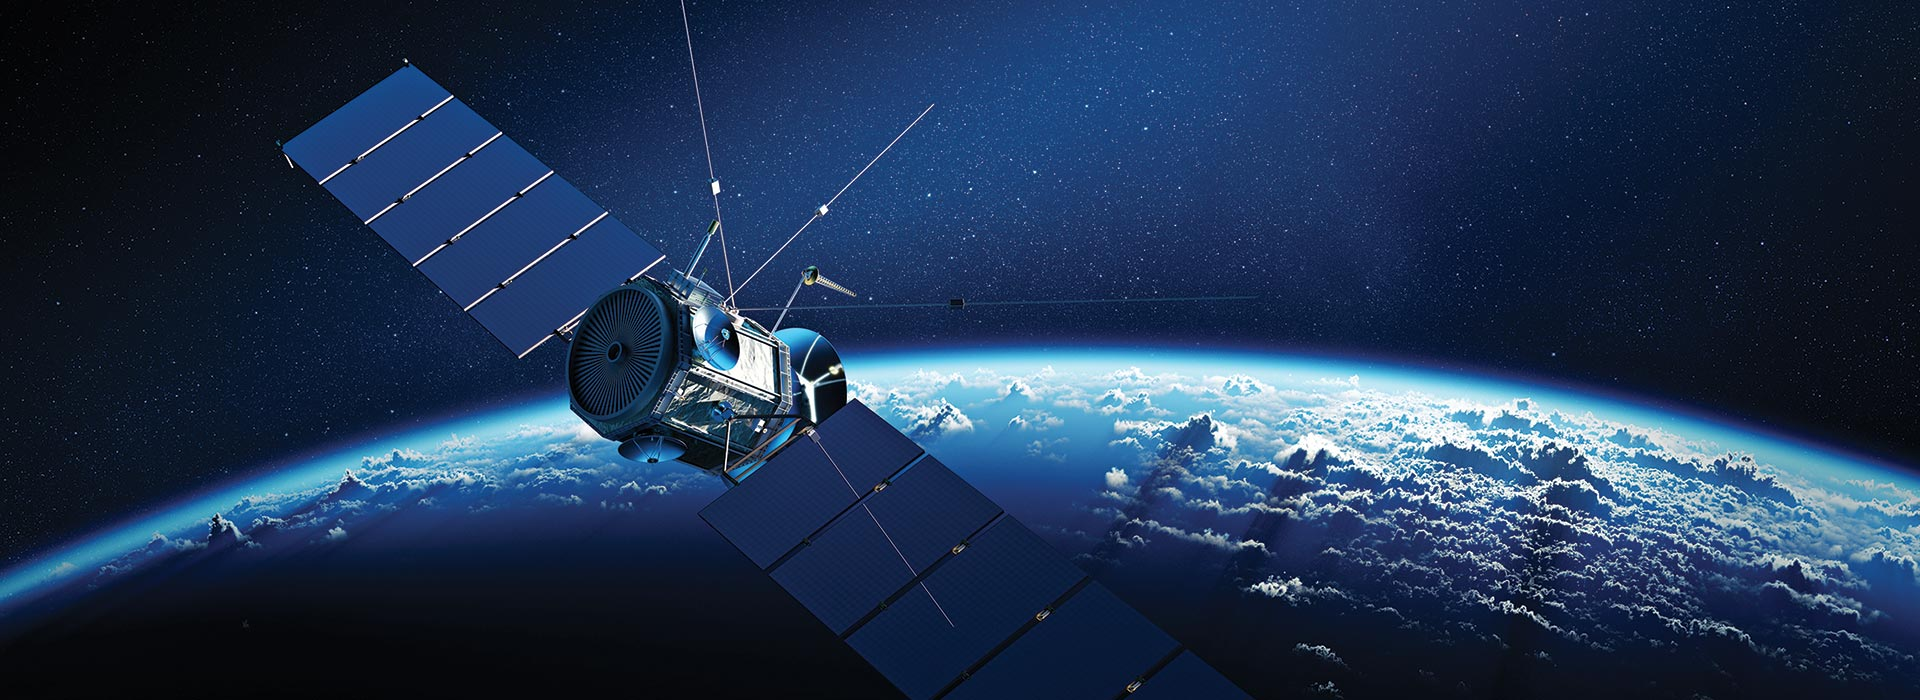 Space - Major Project - a satellite orbiting earth